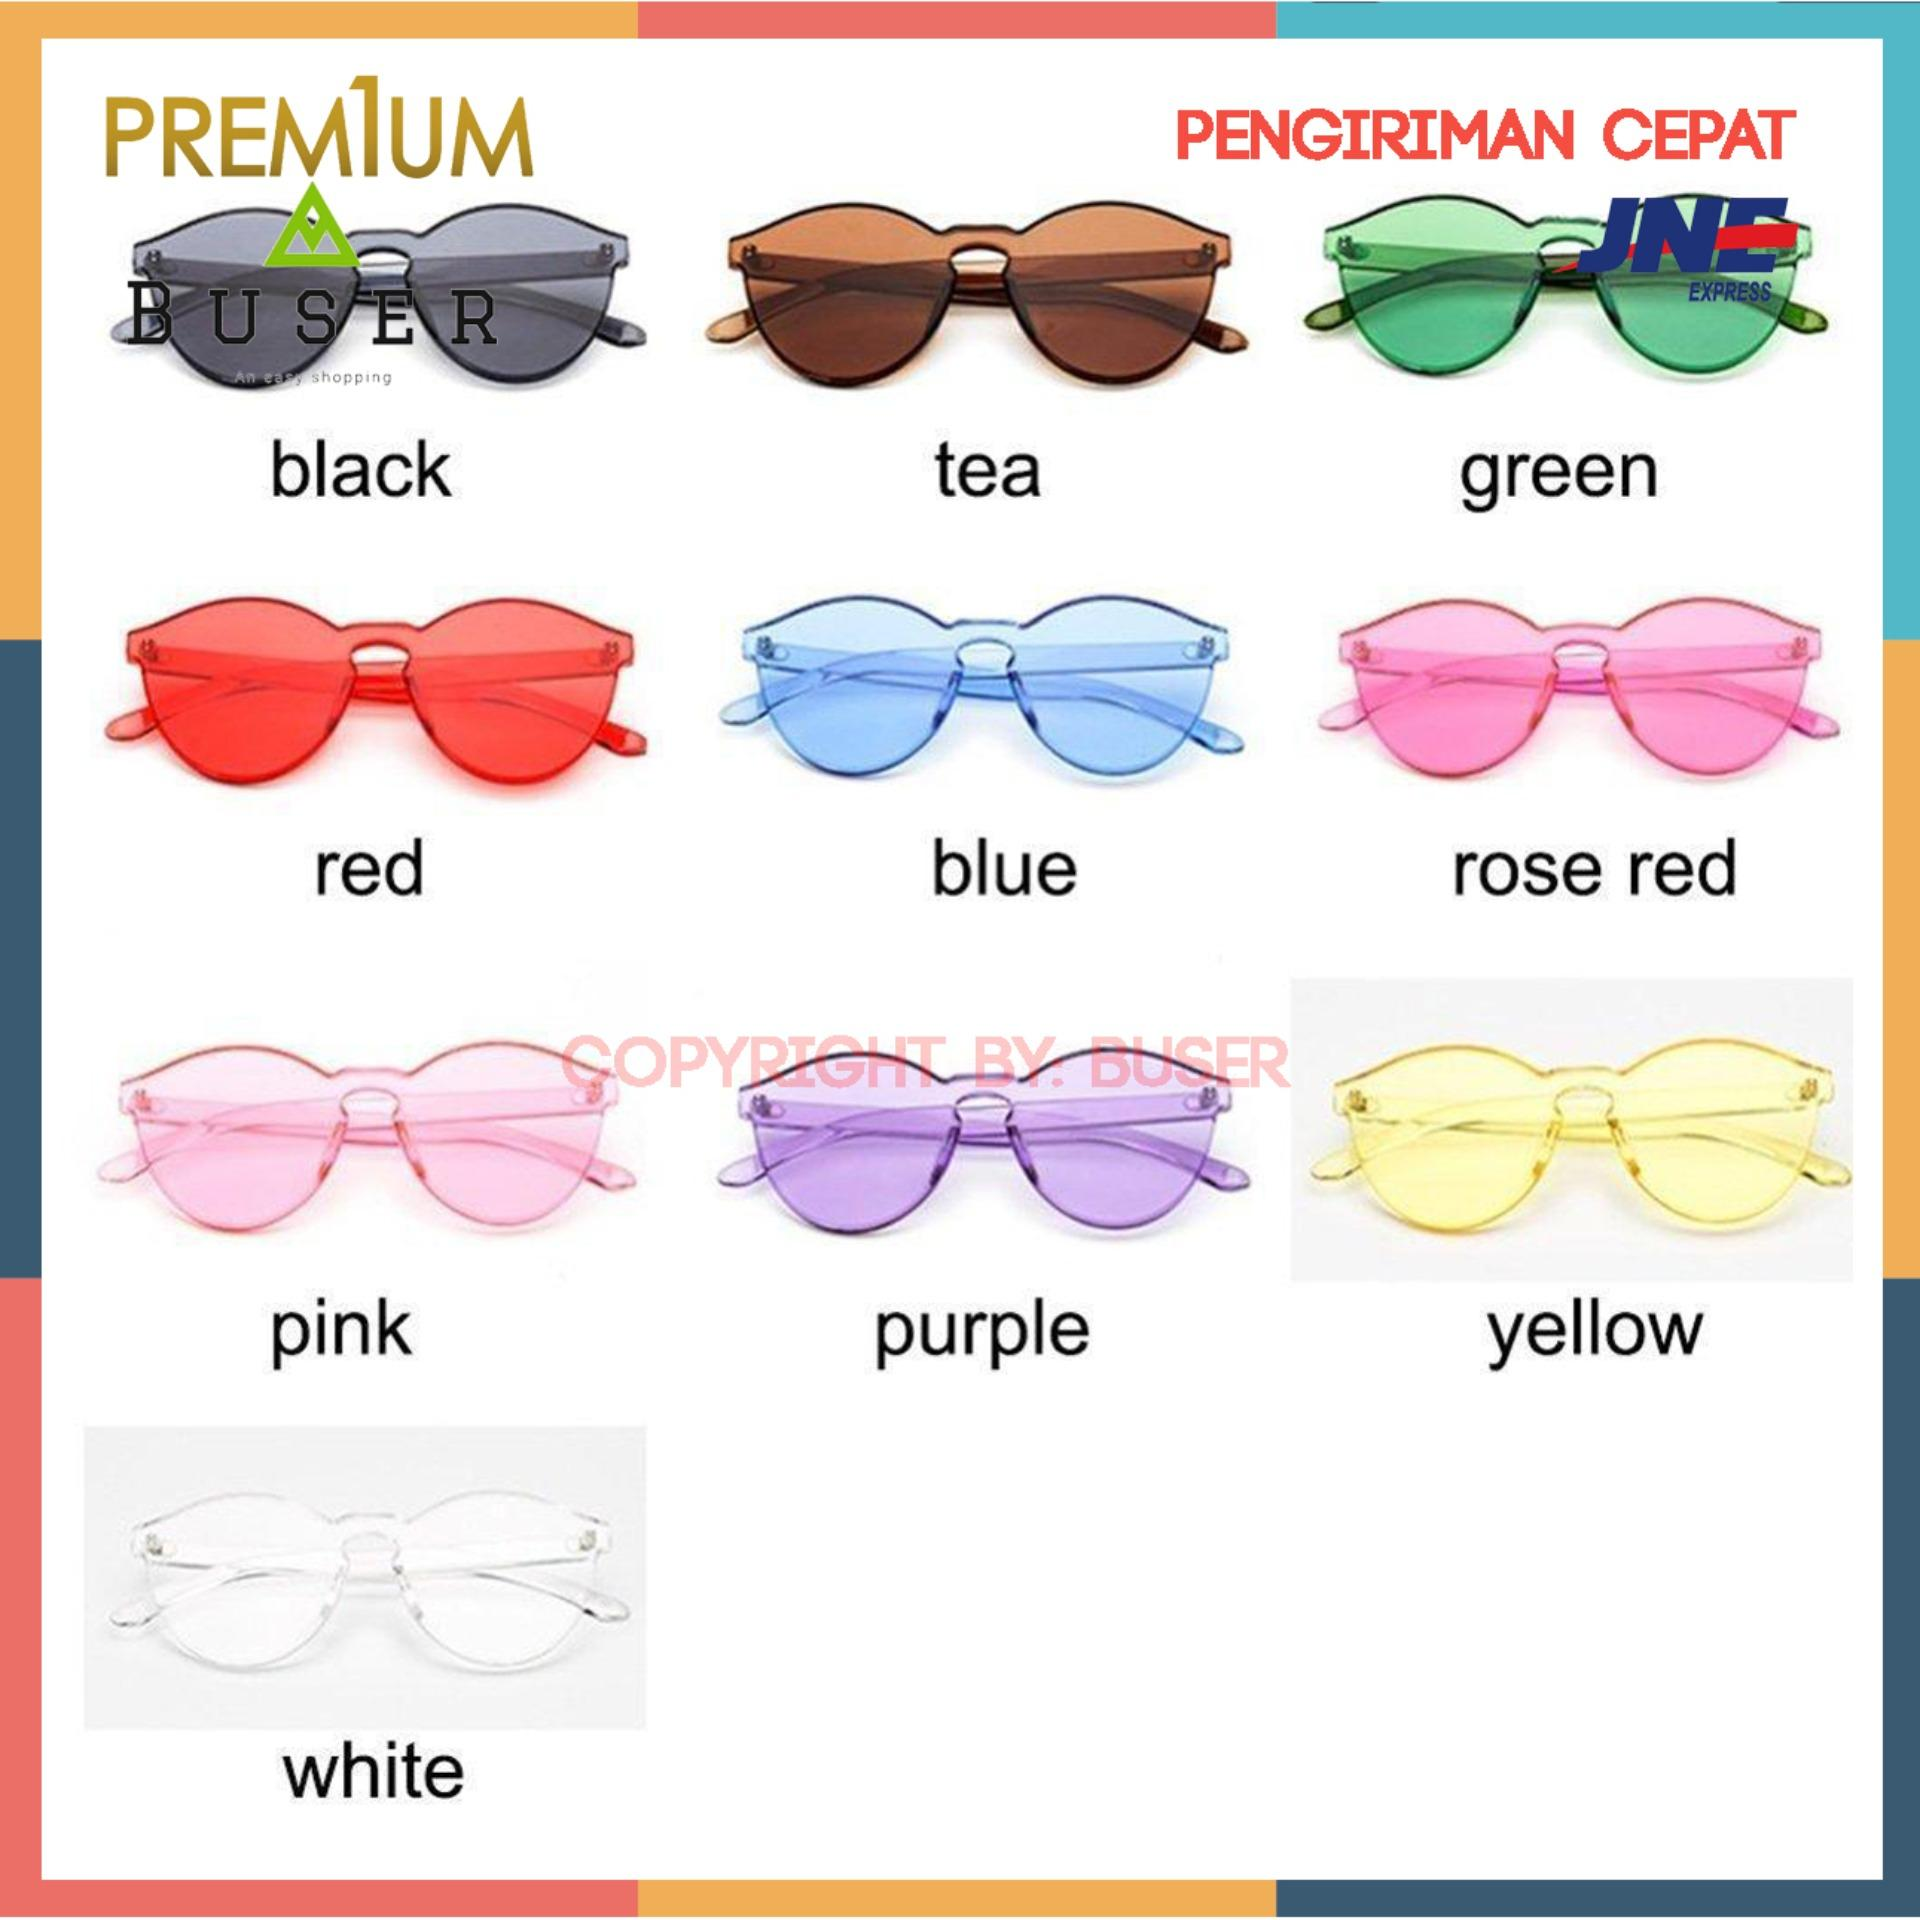 Kacamata jelly Korea sunglasses - Female Frameless Bening Kopel Lensa Berwarna-Warni Paling Trendi Kacamata - kacamata korea - kacamata buser